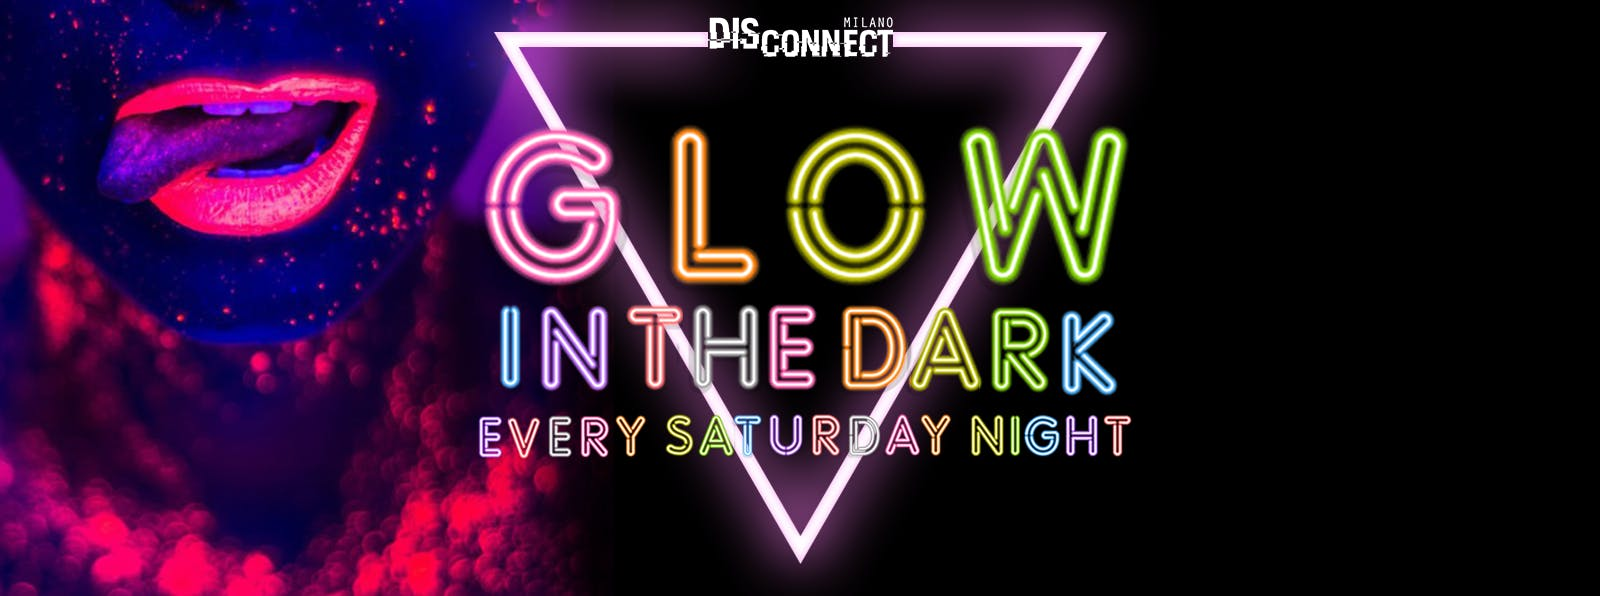 Disconnect Milano - Glow In The Dark - Every Saturday Night